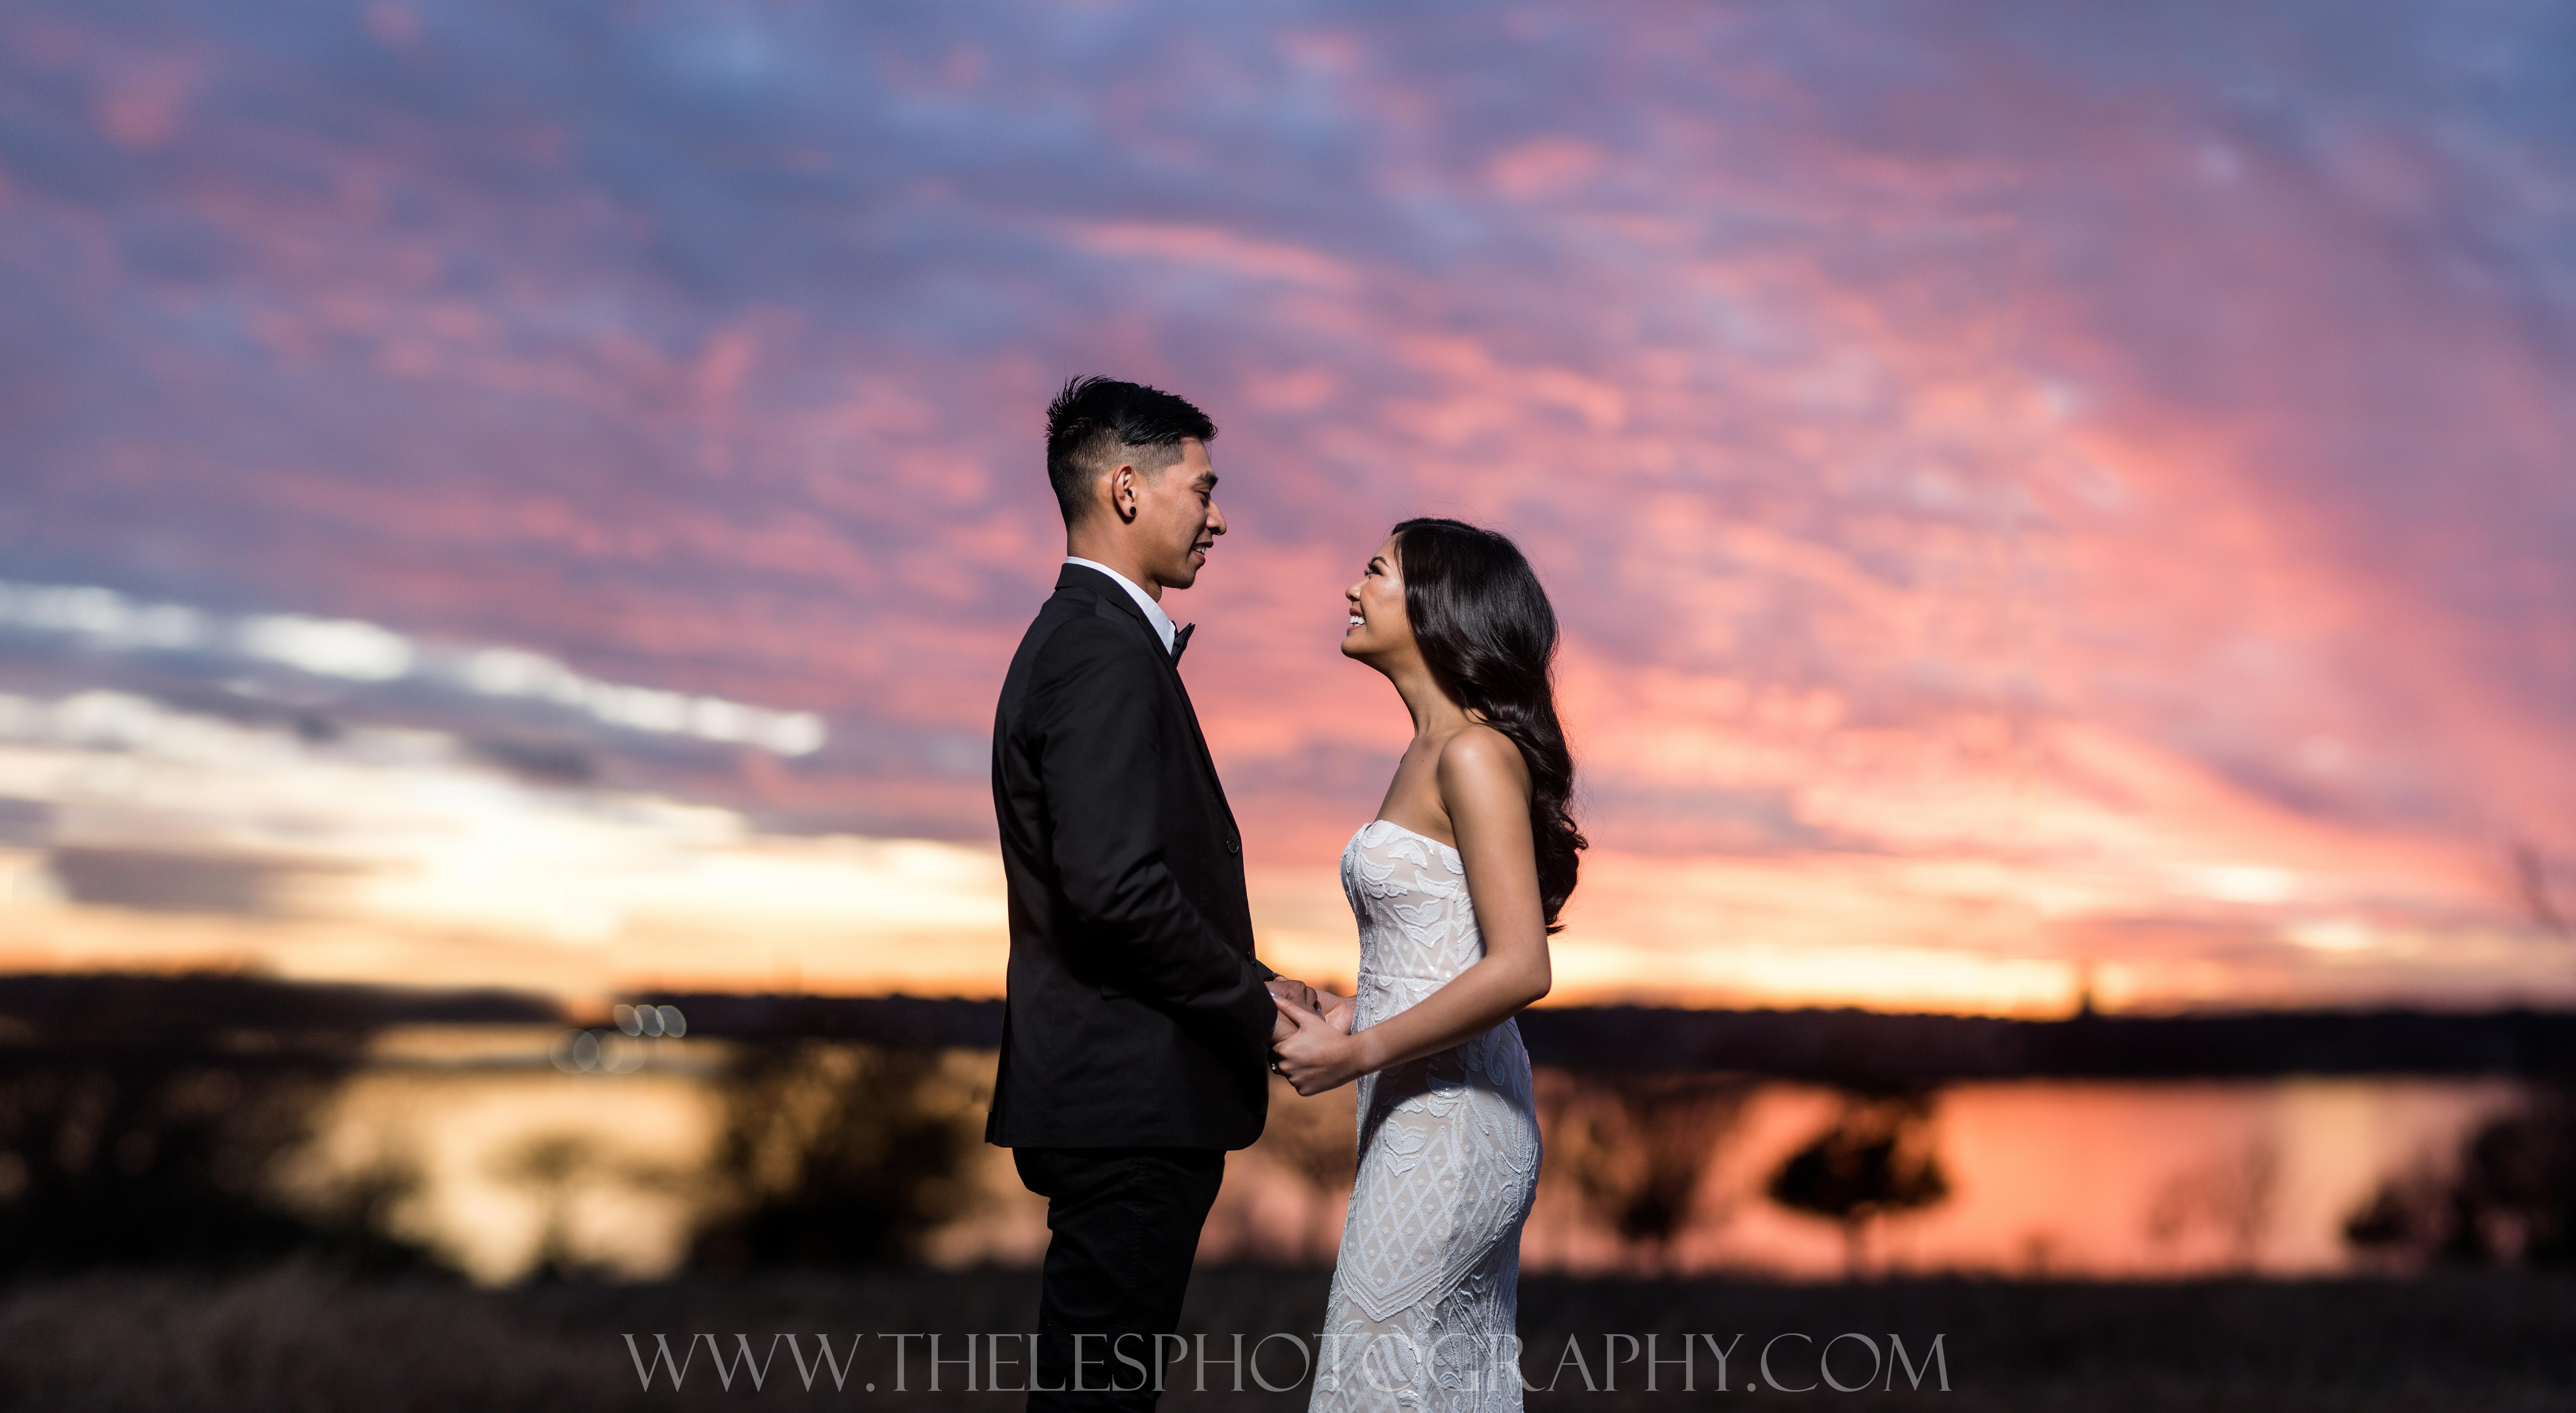 Thu and Hieu's Engagement Highlight 15